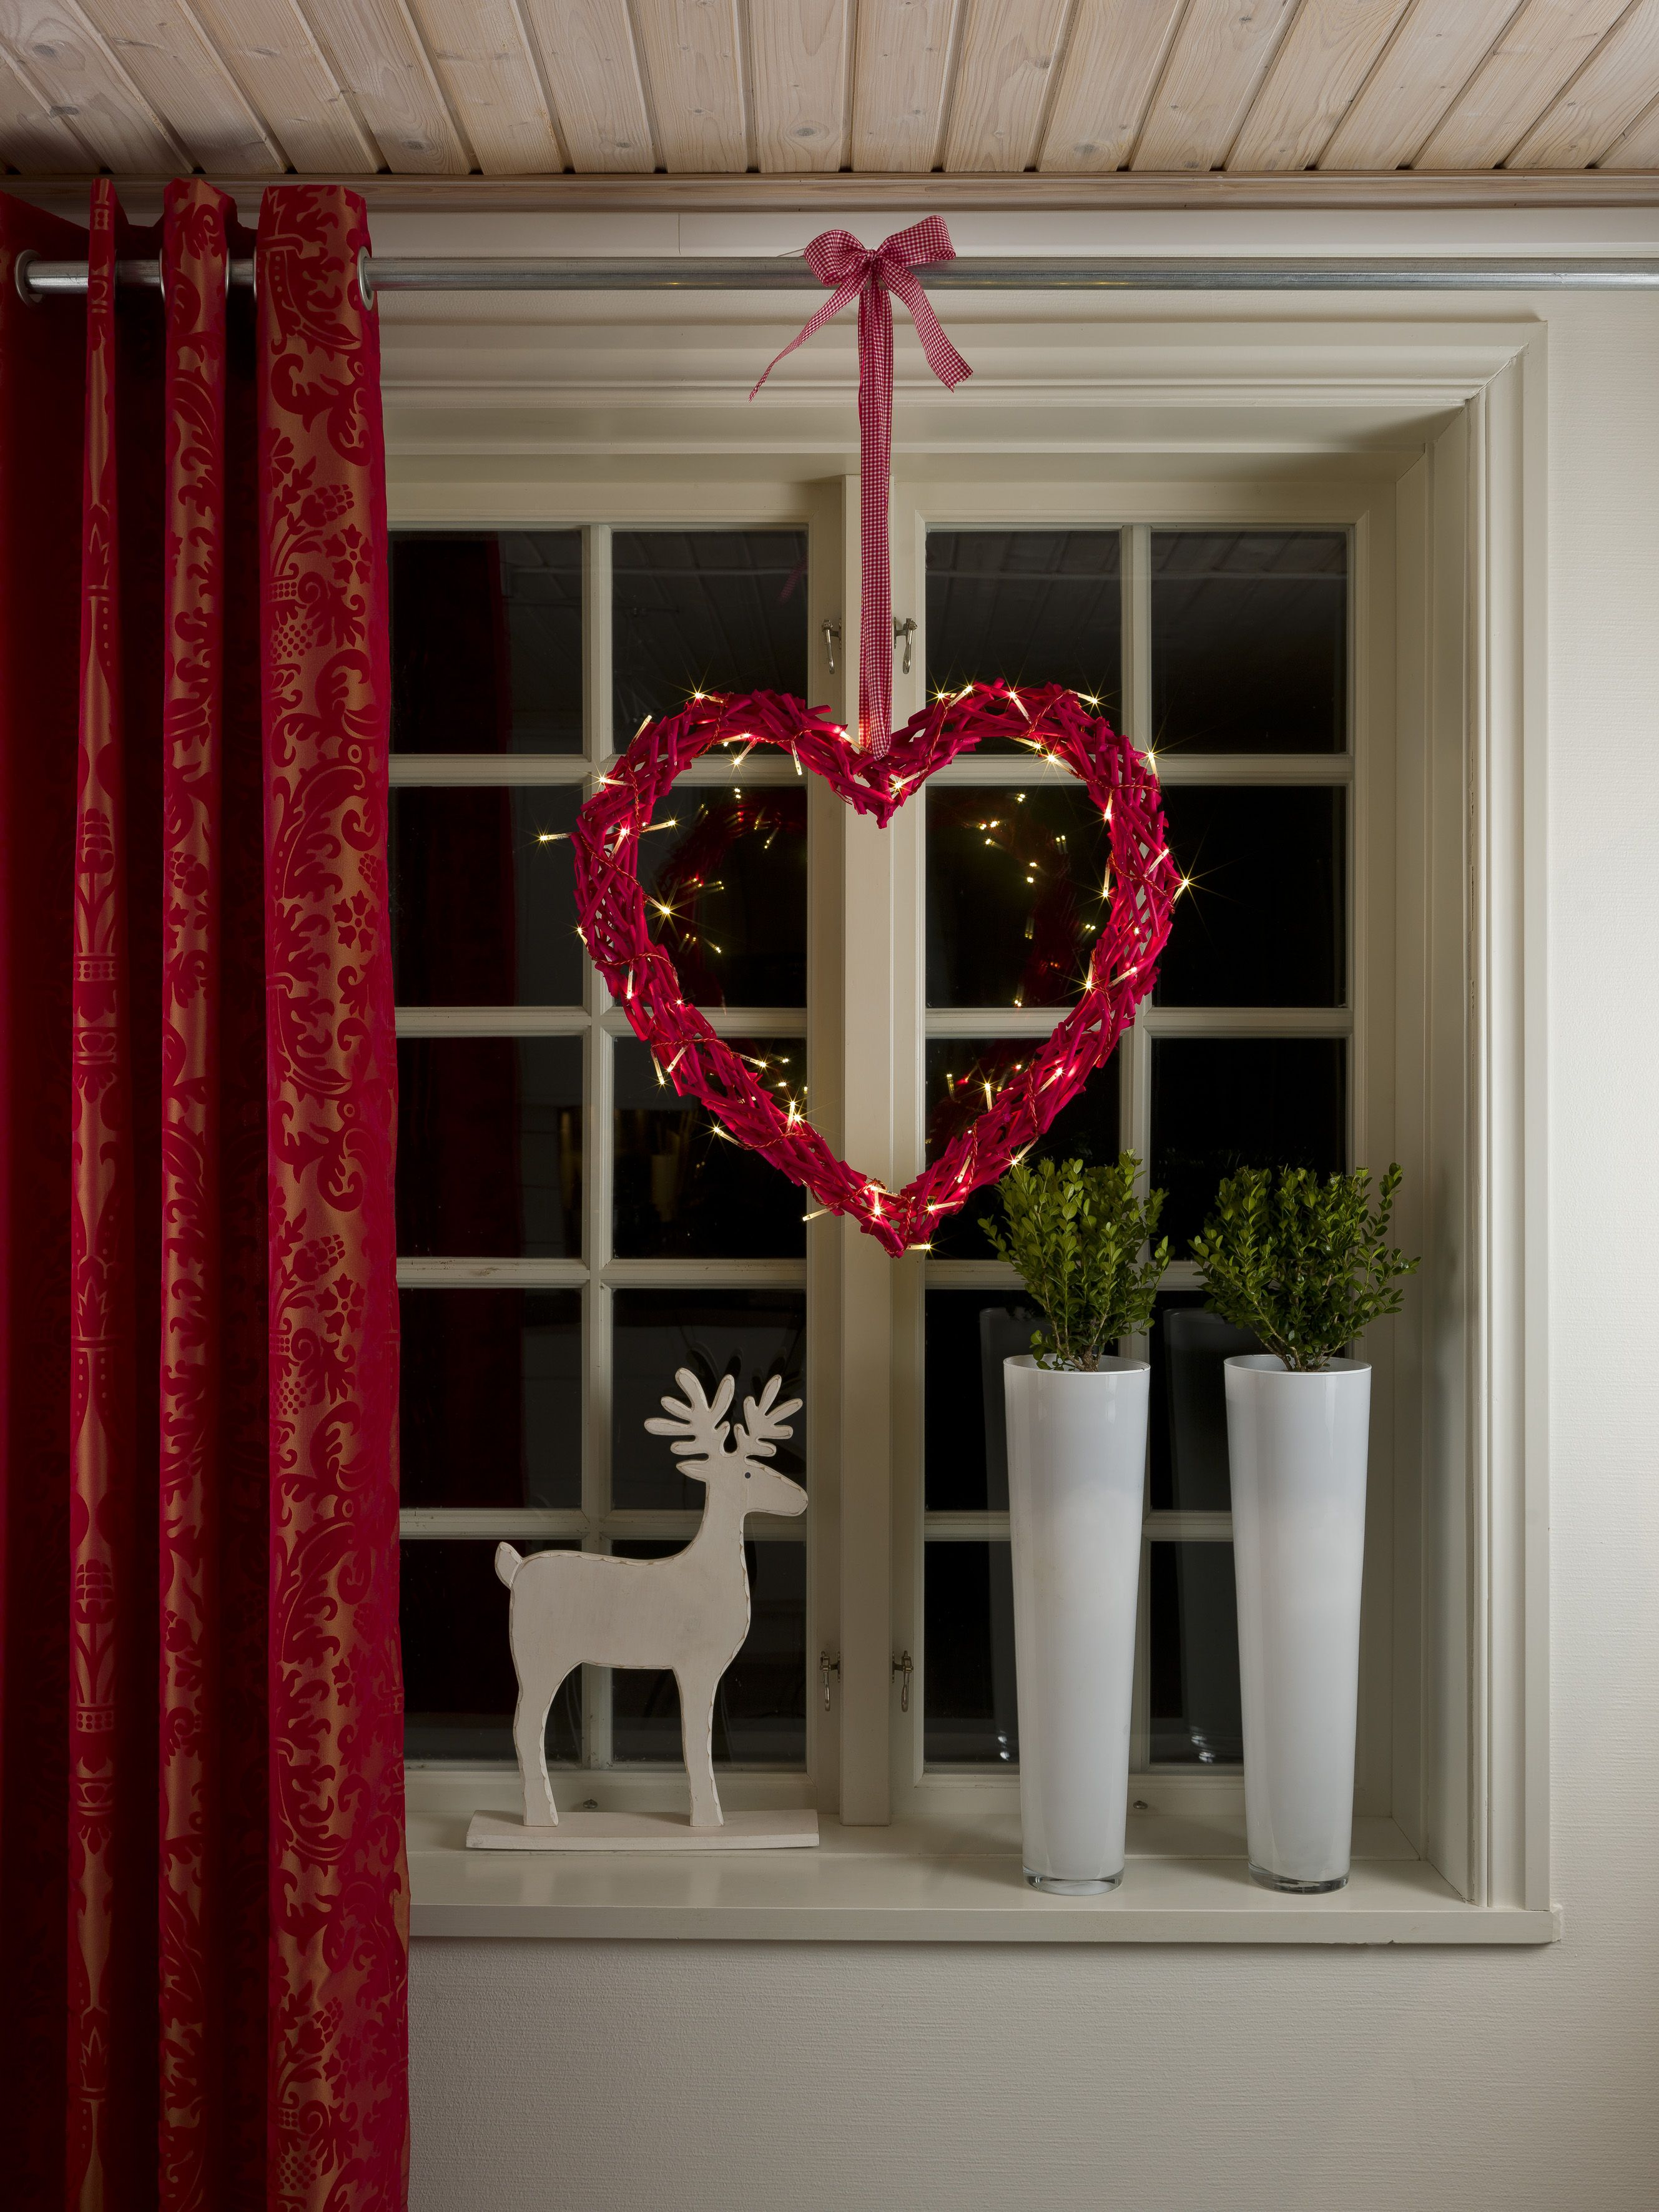 brighten up your window this christmas with this handmade lit heart painted in red